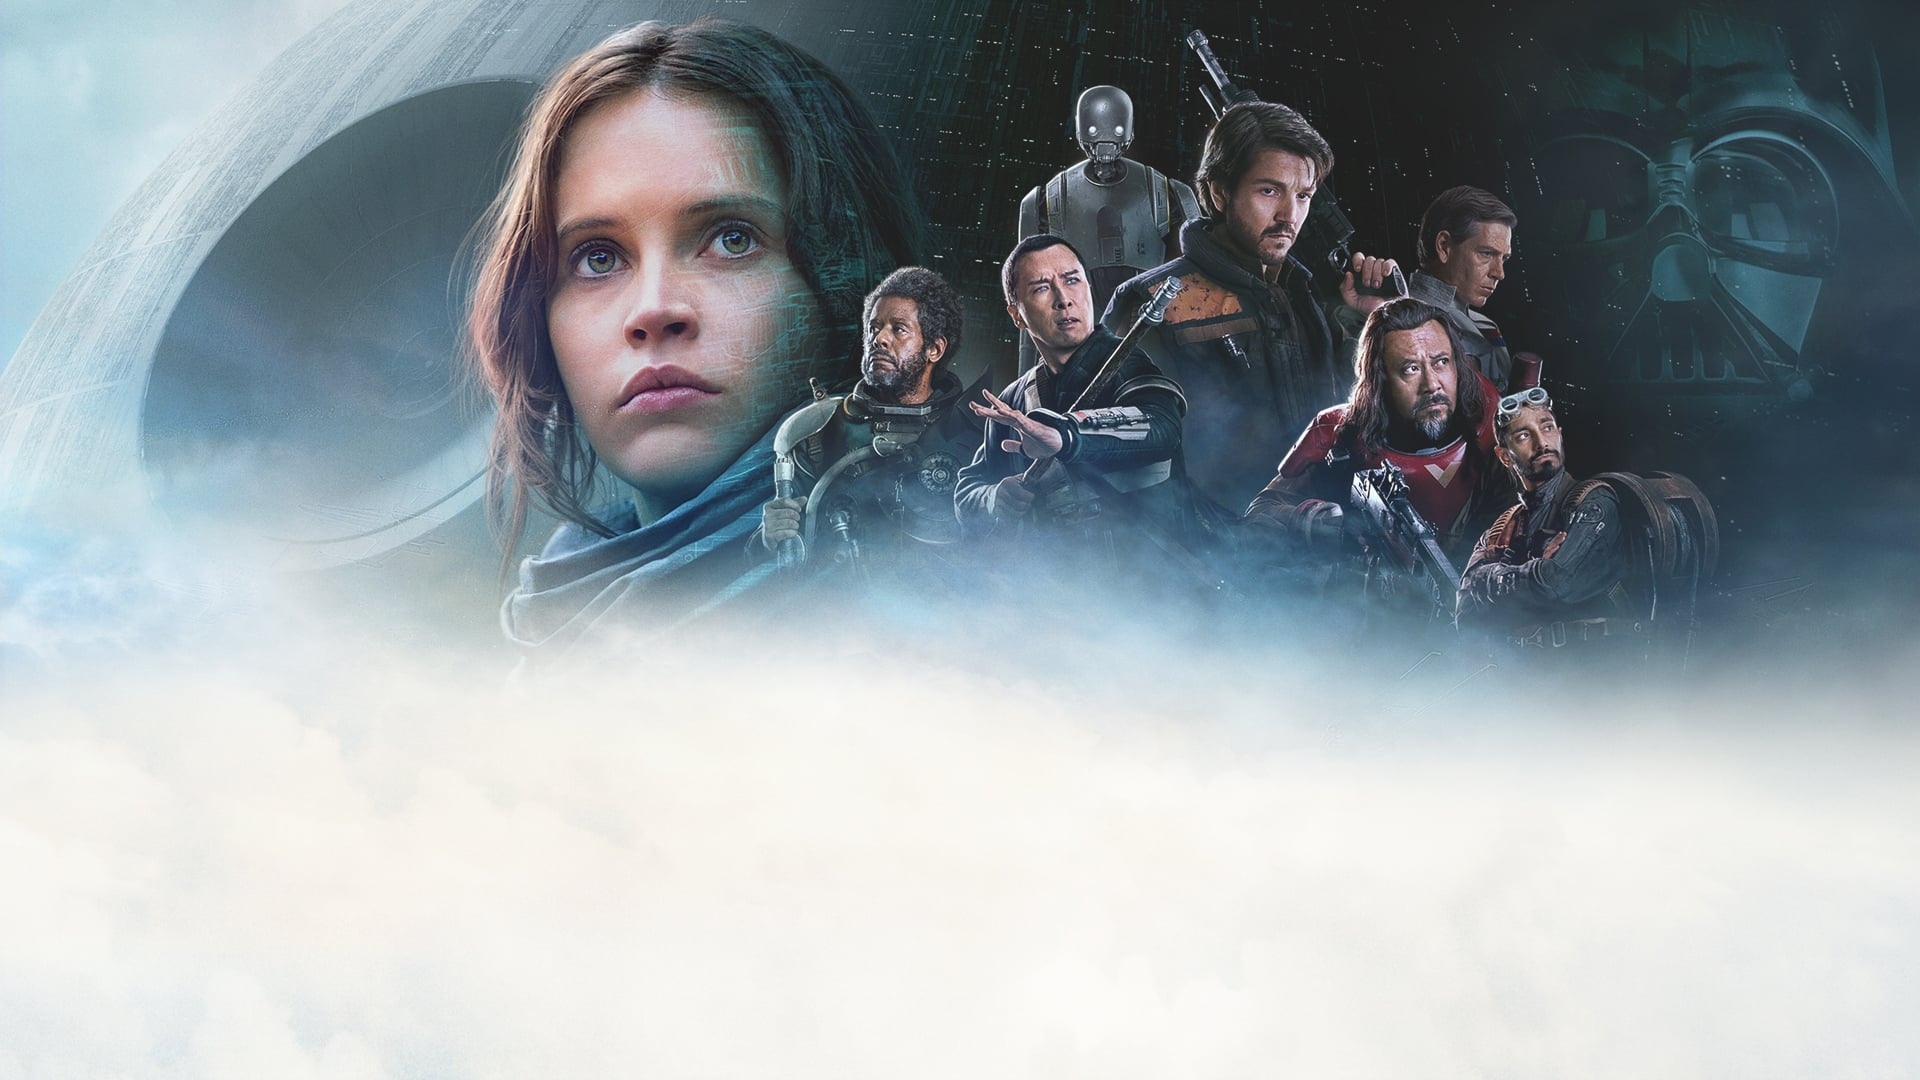 Star Wars Rogue One Ganzer Film Deutsch Stream